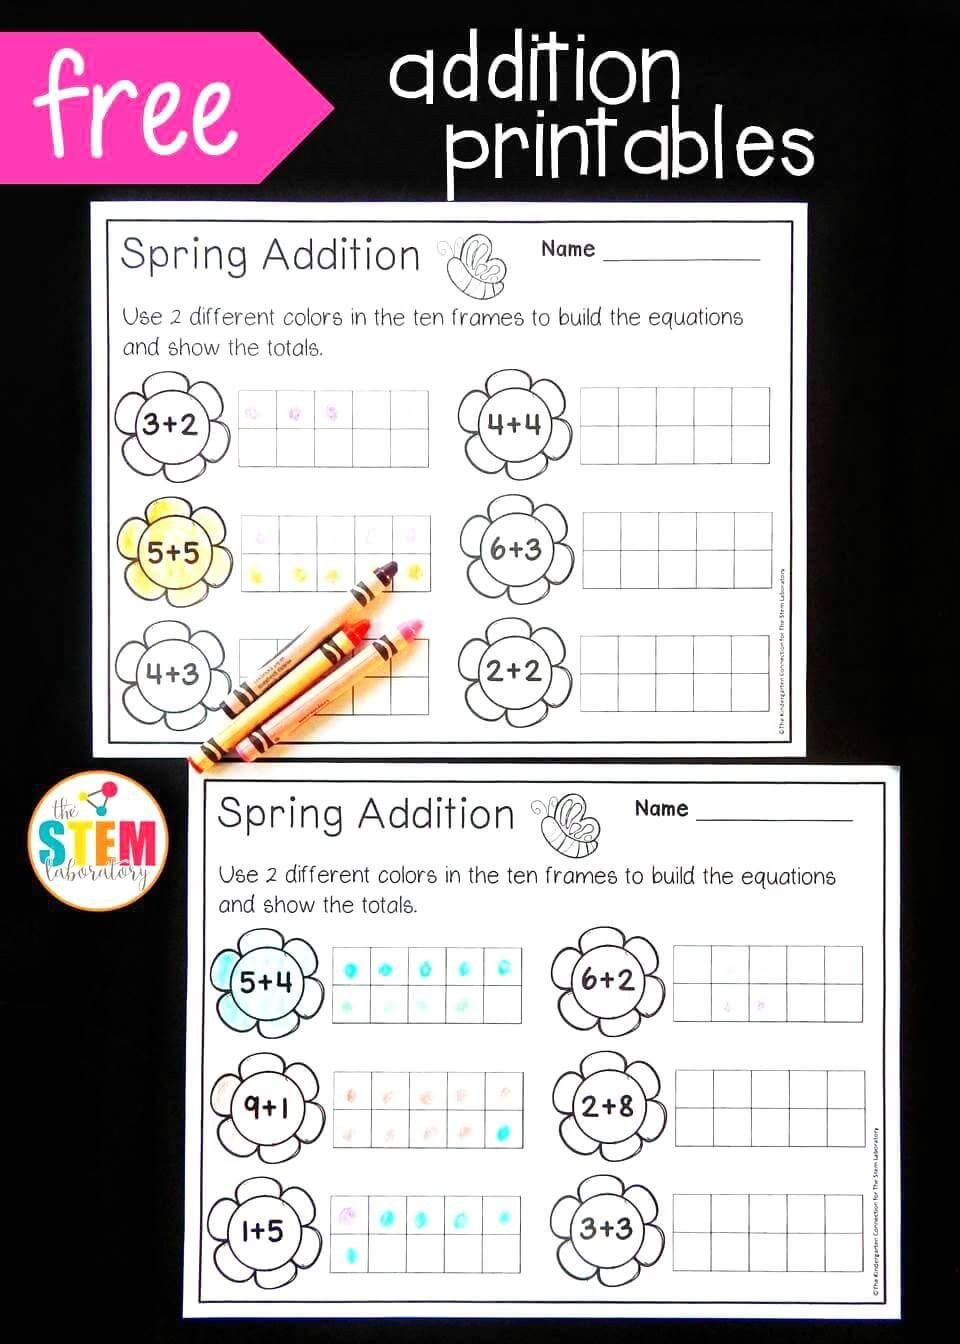 Blank Ten Frame Worksheets Spring Ten Frame Addition the Stem Laboratory